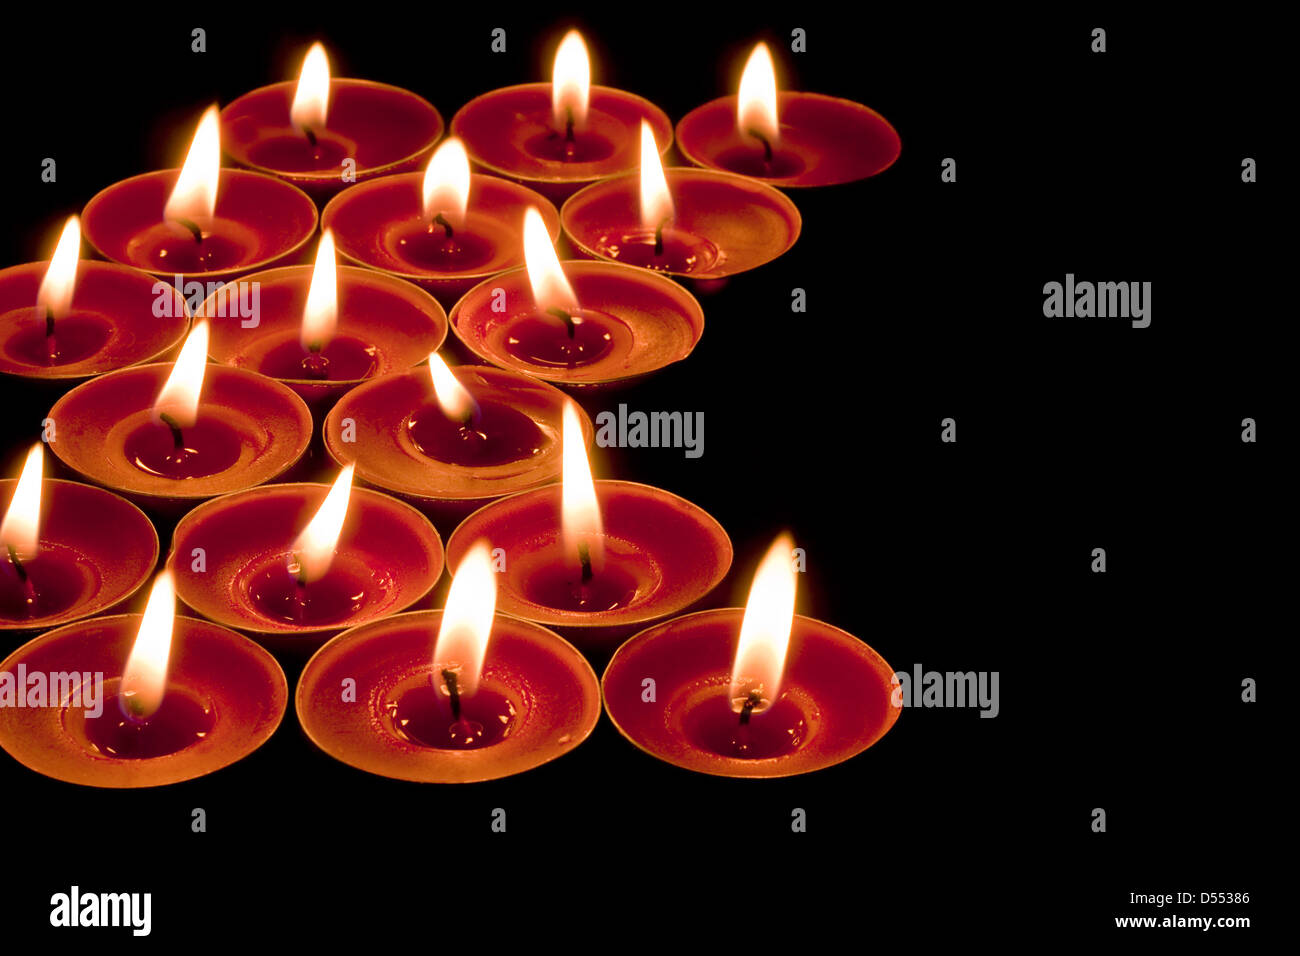 red candlelight edging or border on a black background - Stock Image